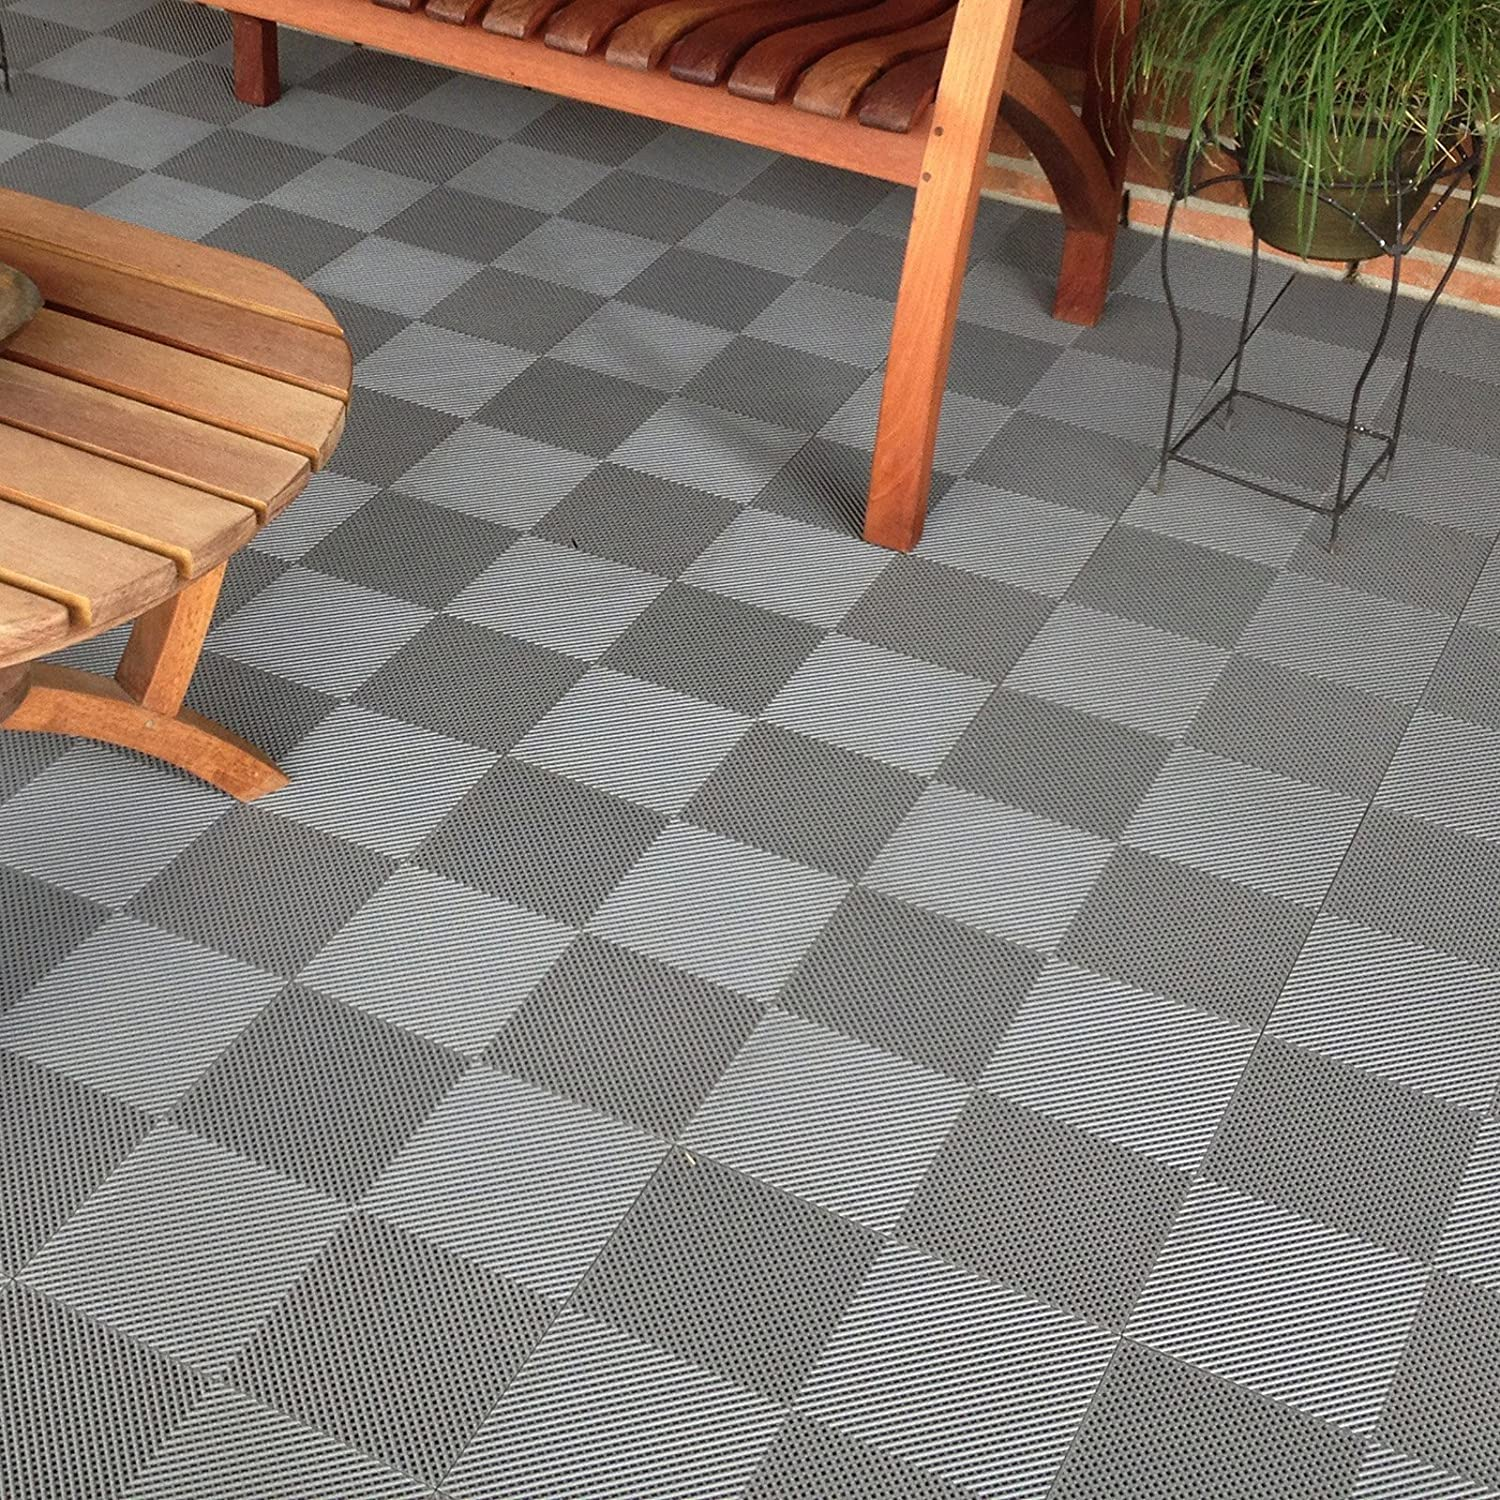 Amazon BlockTile B2US4630 Deck And Patio Flooring Interlocking Tiles Perforated Pack Gray 30 Home Improvement